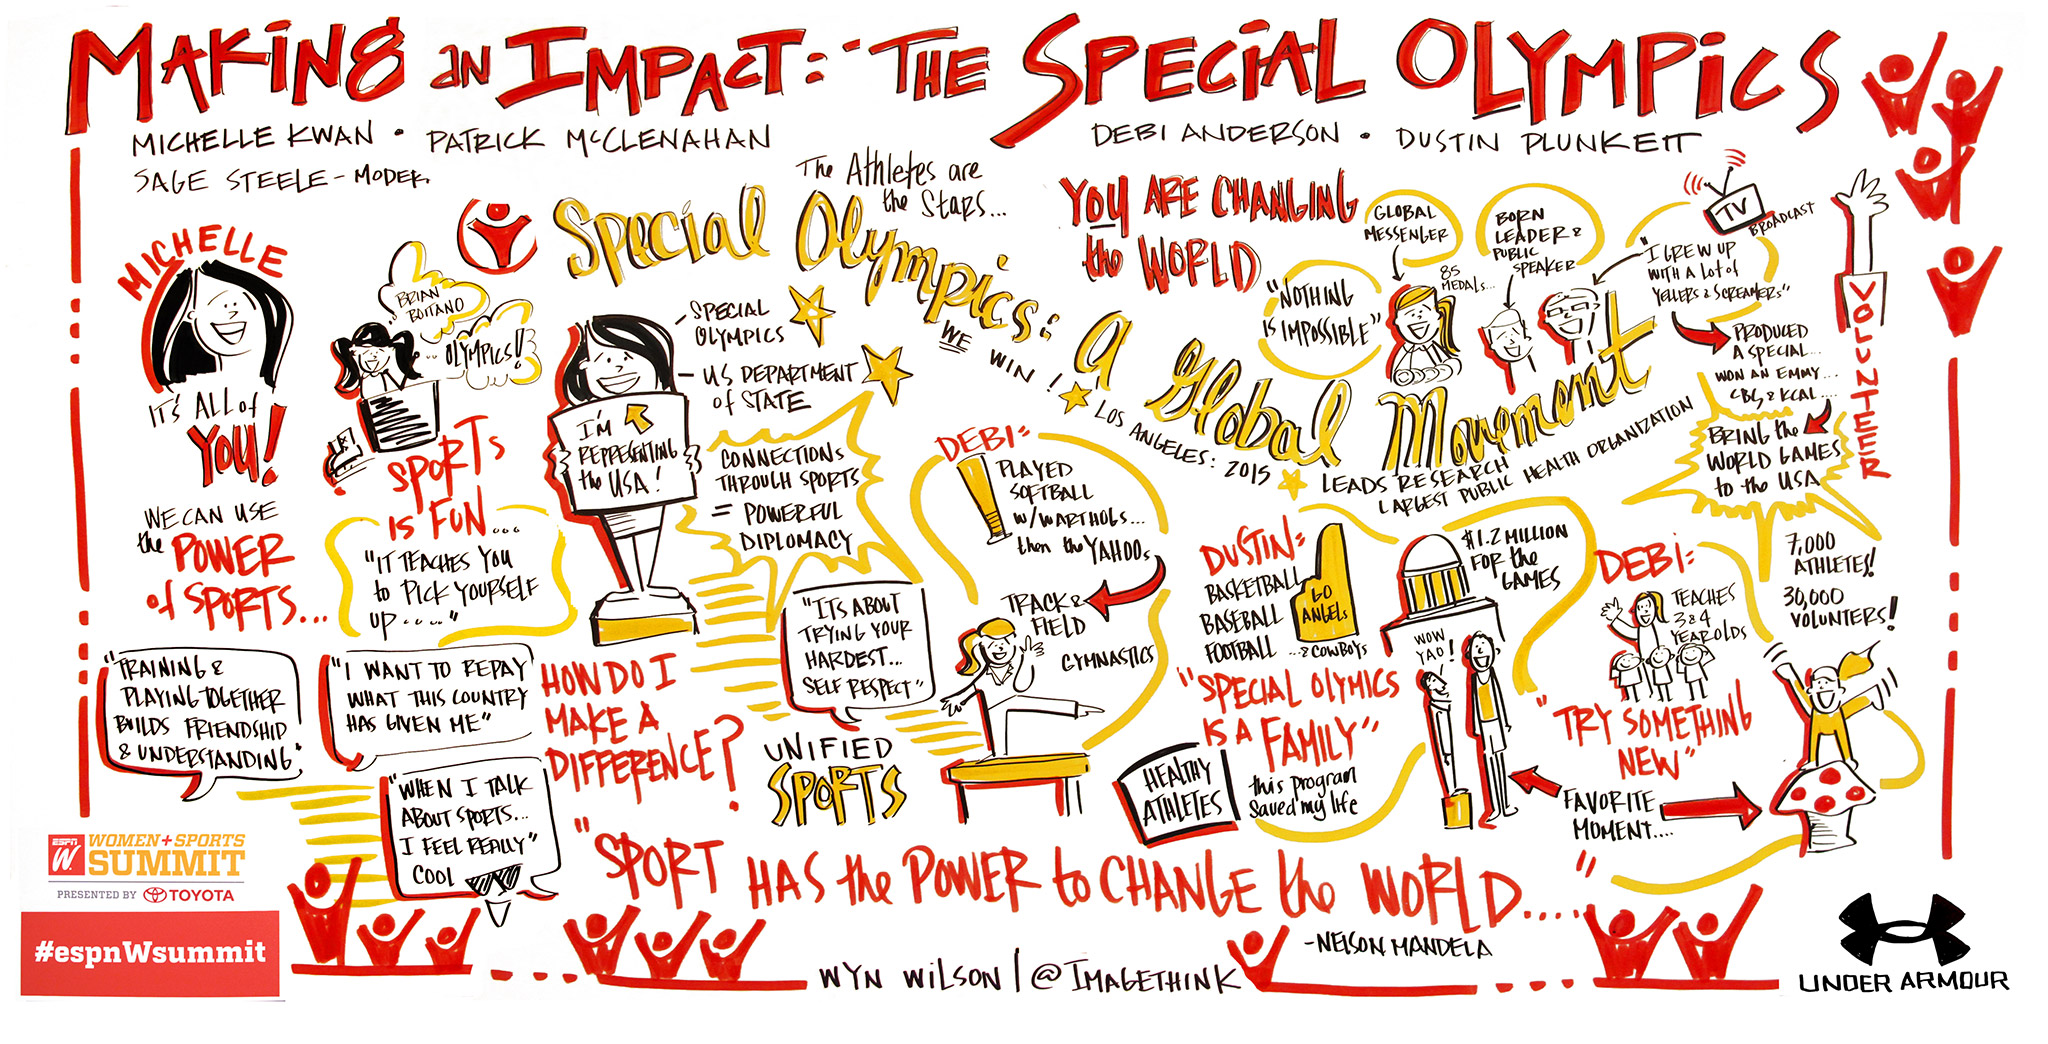 Michelle Kwan was part of the espnW Summit's Special Olympics panel. You don't have to be an Olympian or a professional athlete to benefit from sports, Kwan said. We probably don't realize the transformative power we have through sports.